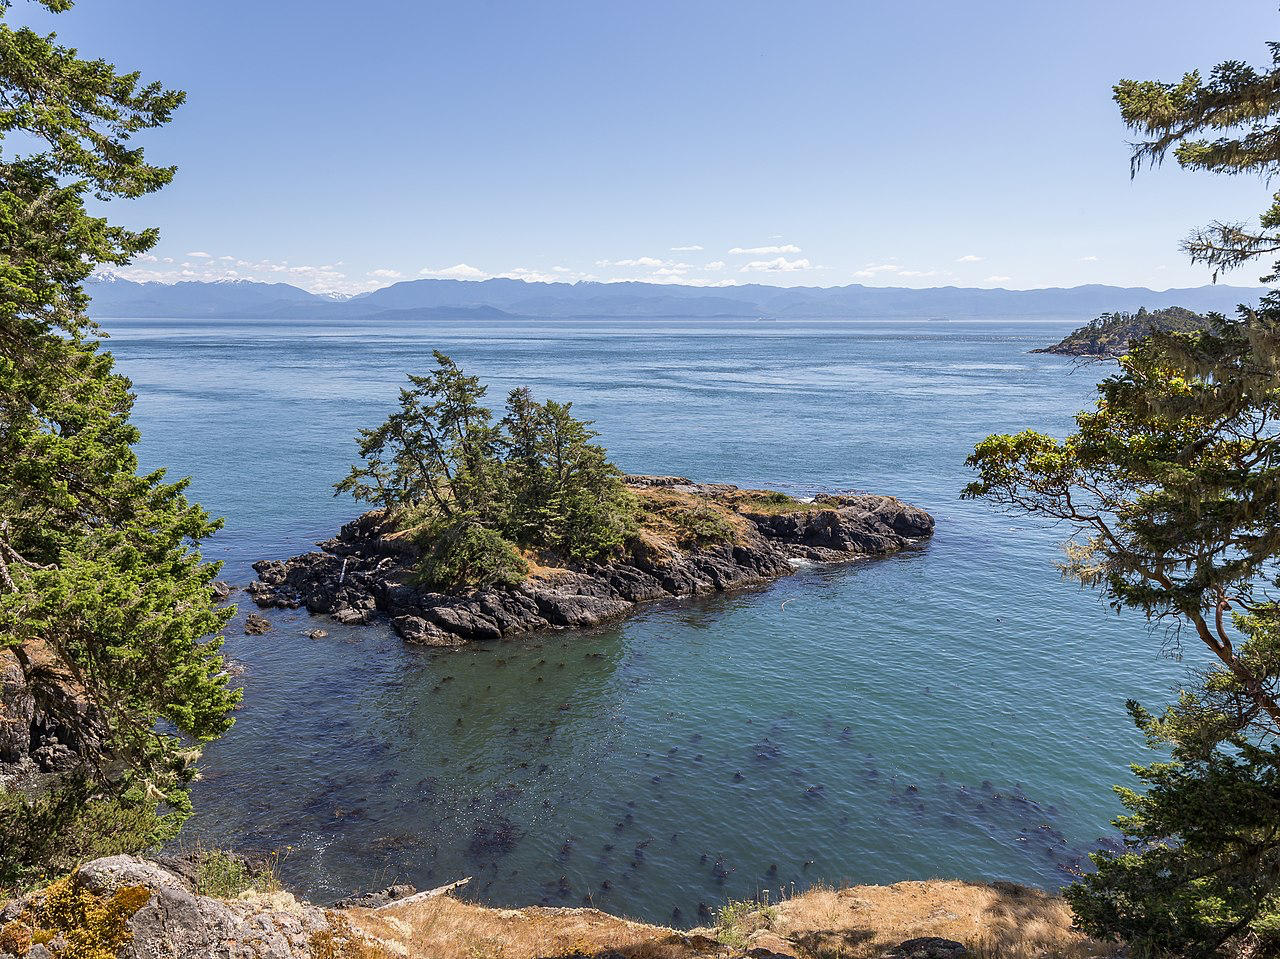 https://commons.wikimedia.org/wiki/File:A_small_island_off_the_coast_of_East_Sooke_Regional_Park,_British_Columbia,_Canada_21.jpg